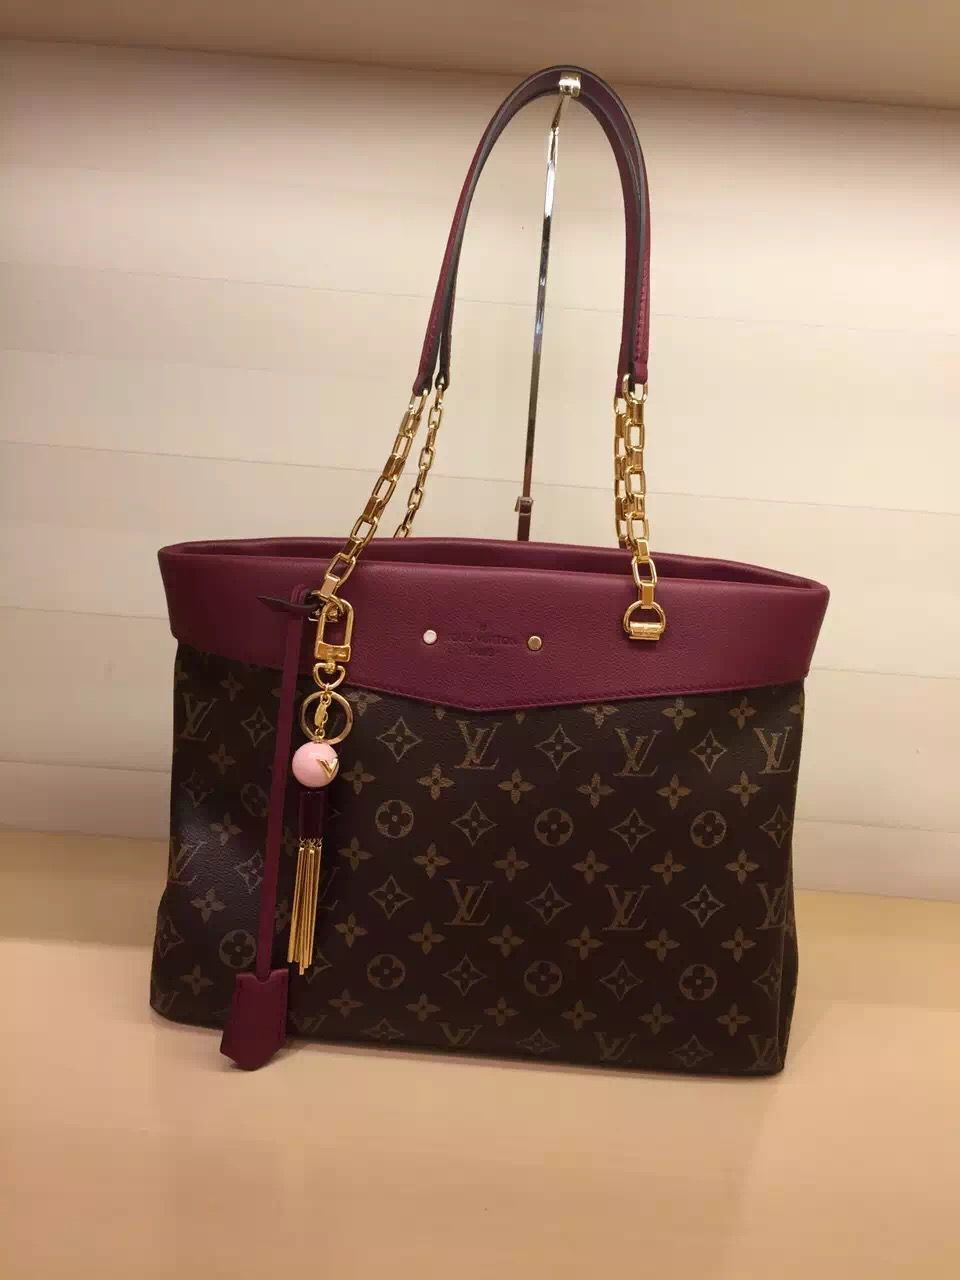 1e661e7cb11b AUTHENTIC LOUIS VUITTON PALLAS SHOPPER BAG M51196 AUROR